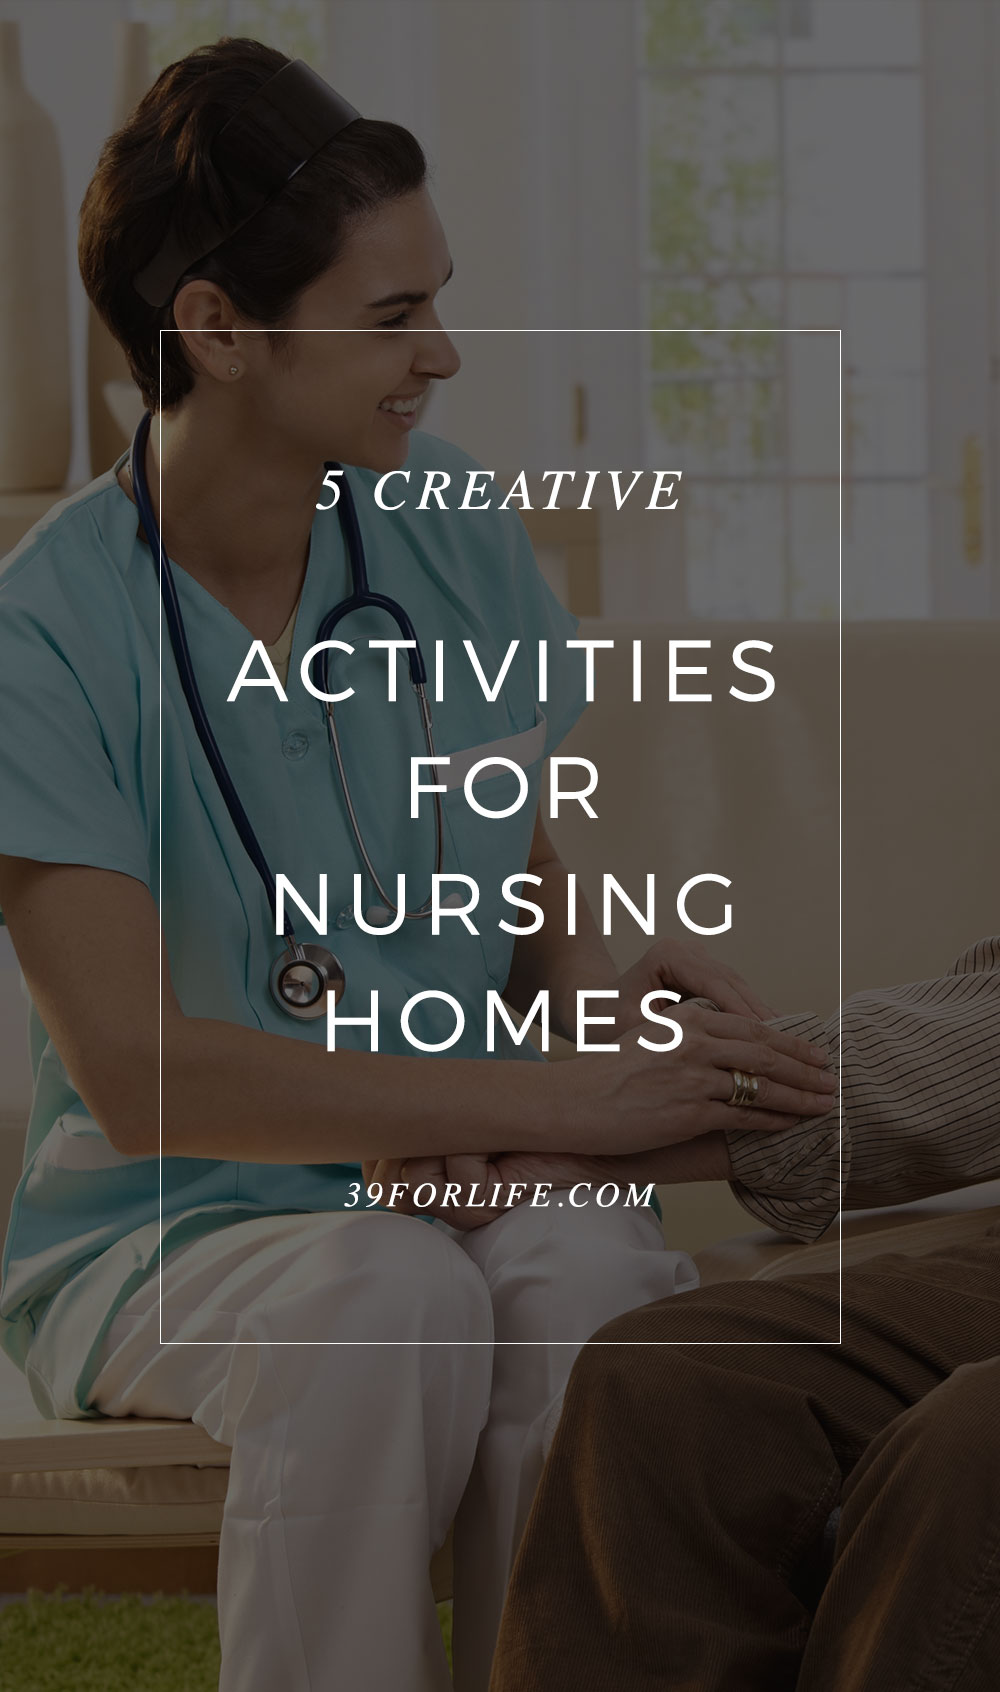 Make spending time with your aging parent or grandparent special with these five creative activities you can do together in a nursing home.